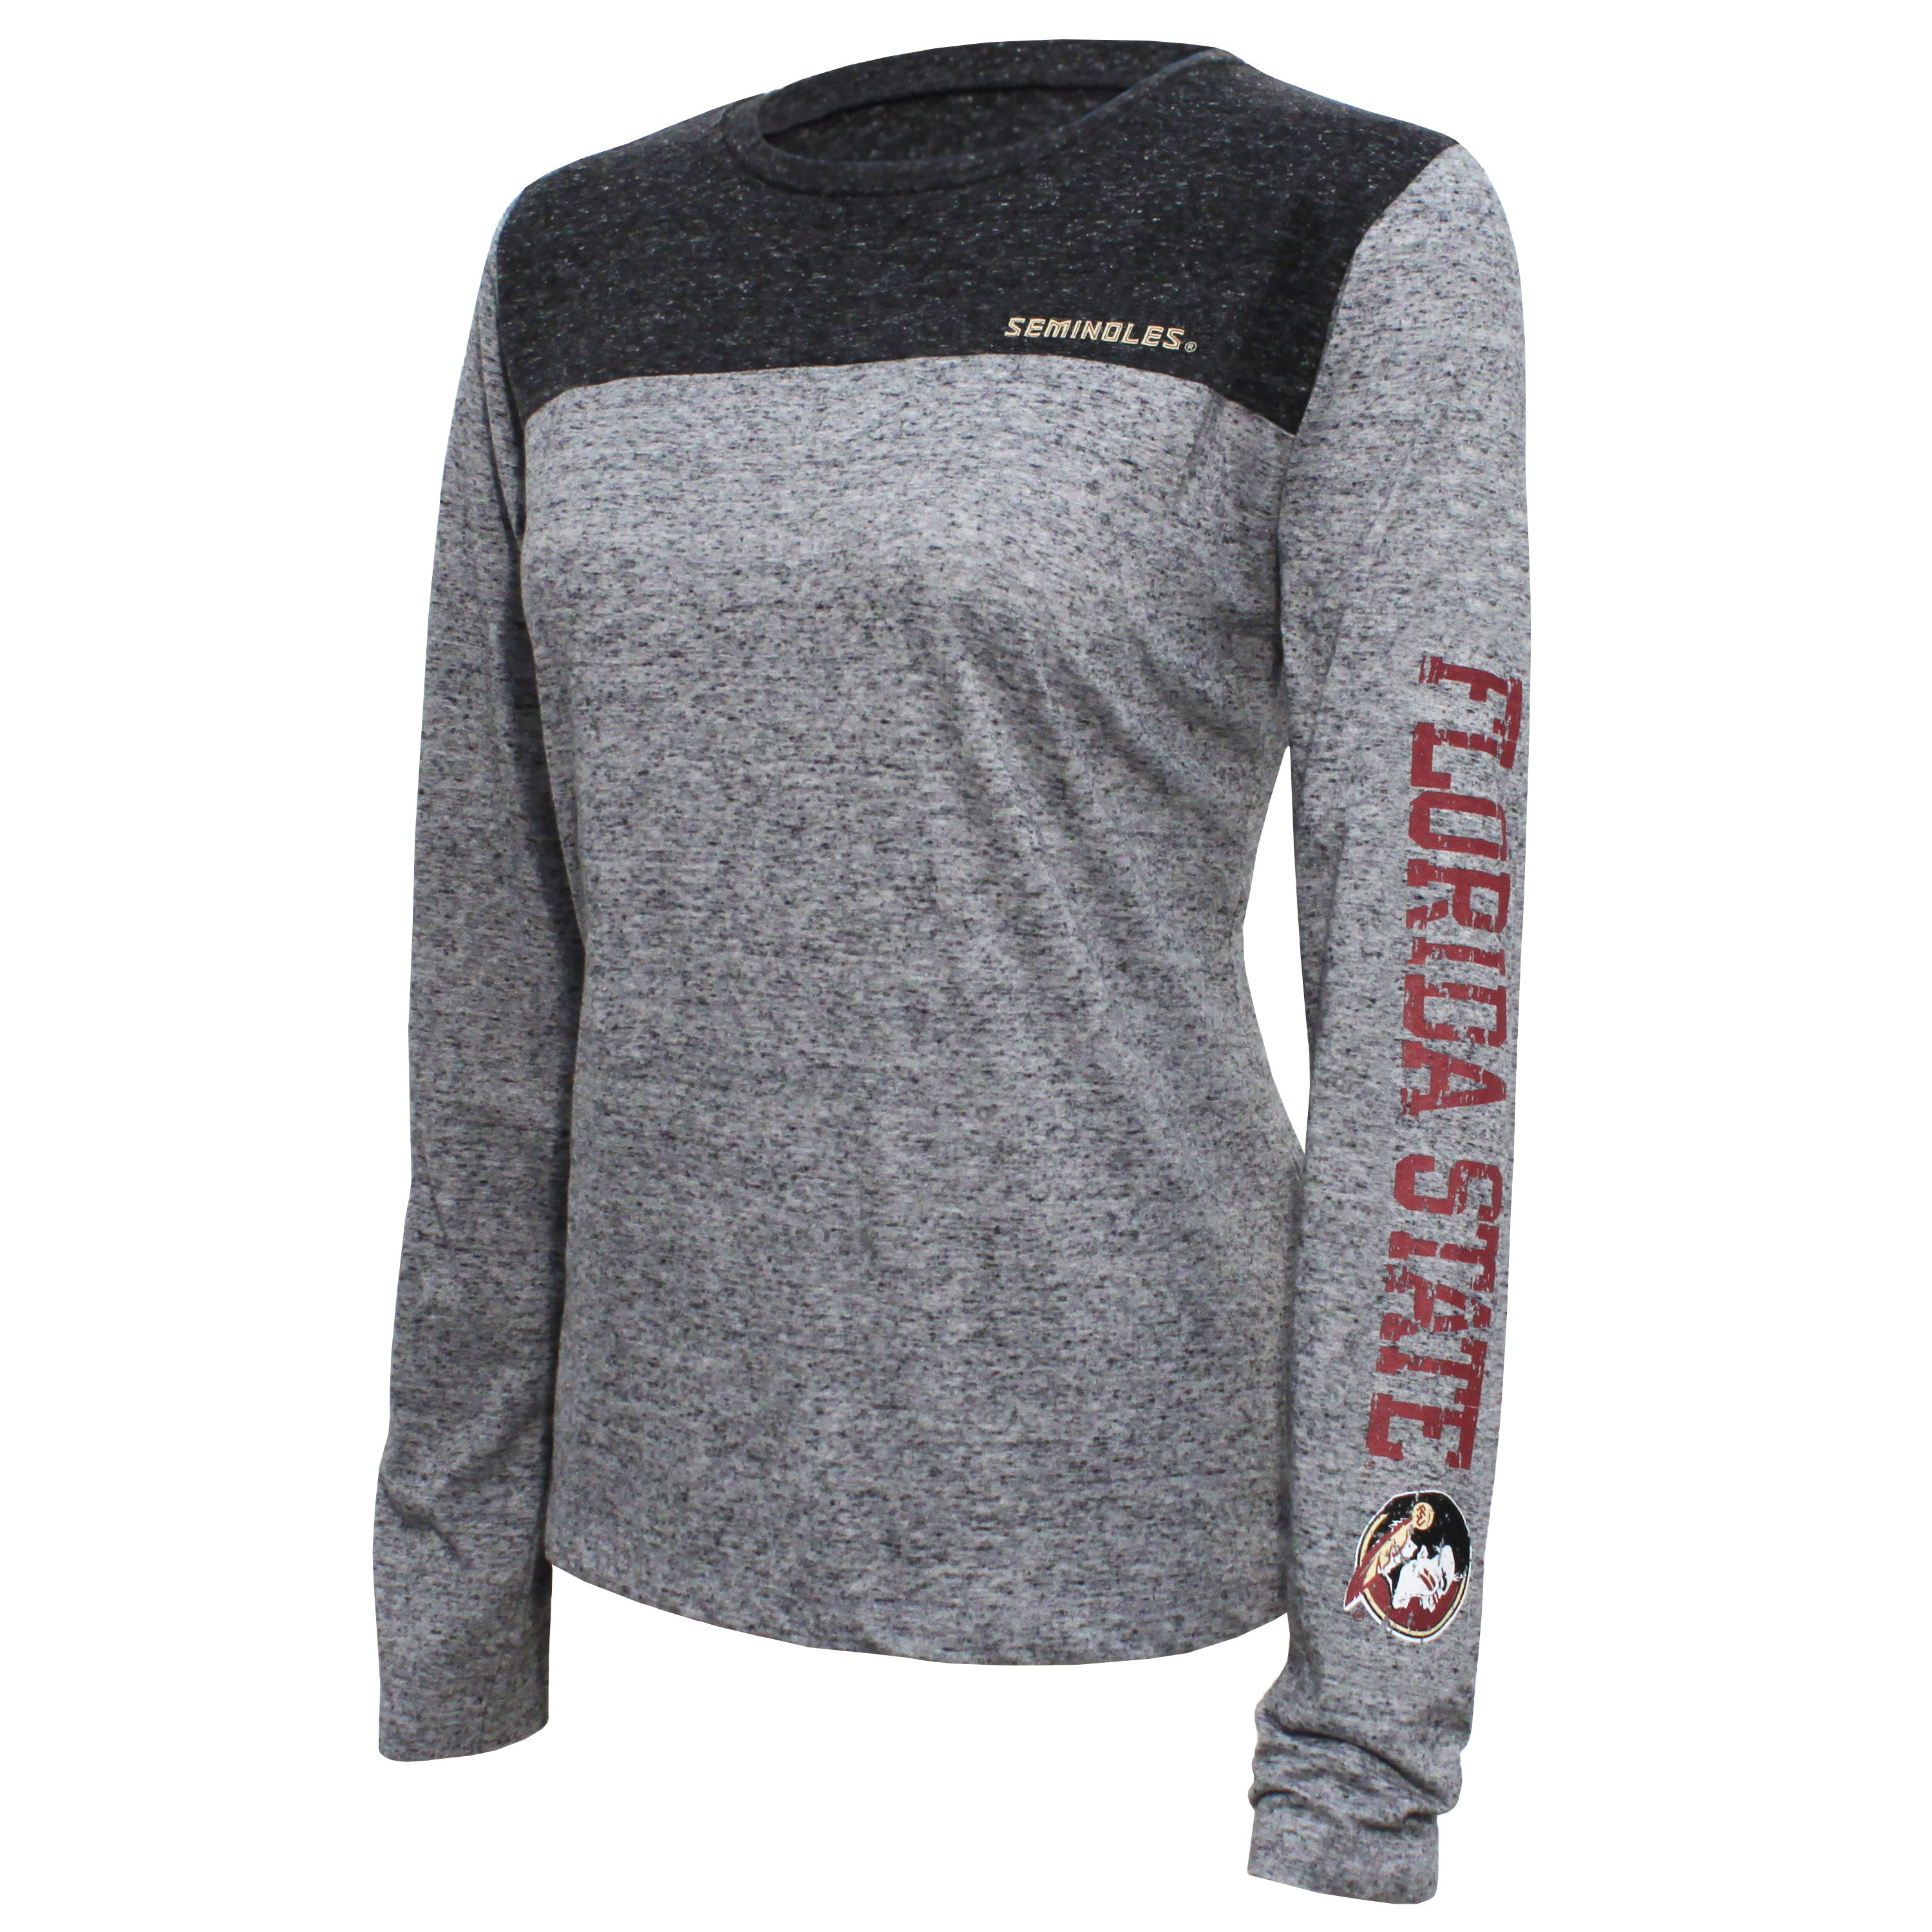 Campus Specialties Florida State Women's Gray Top